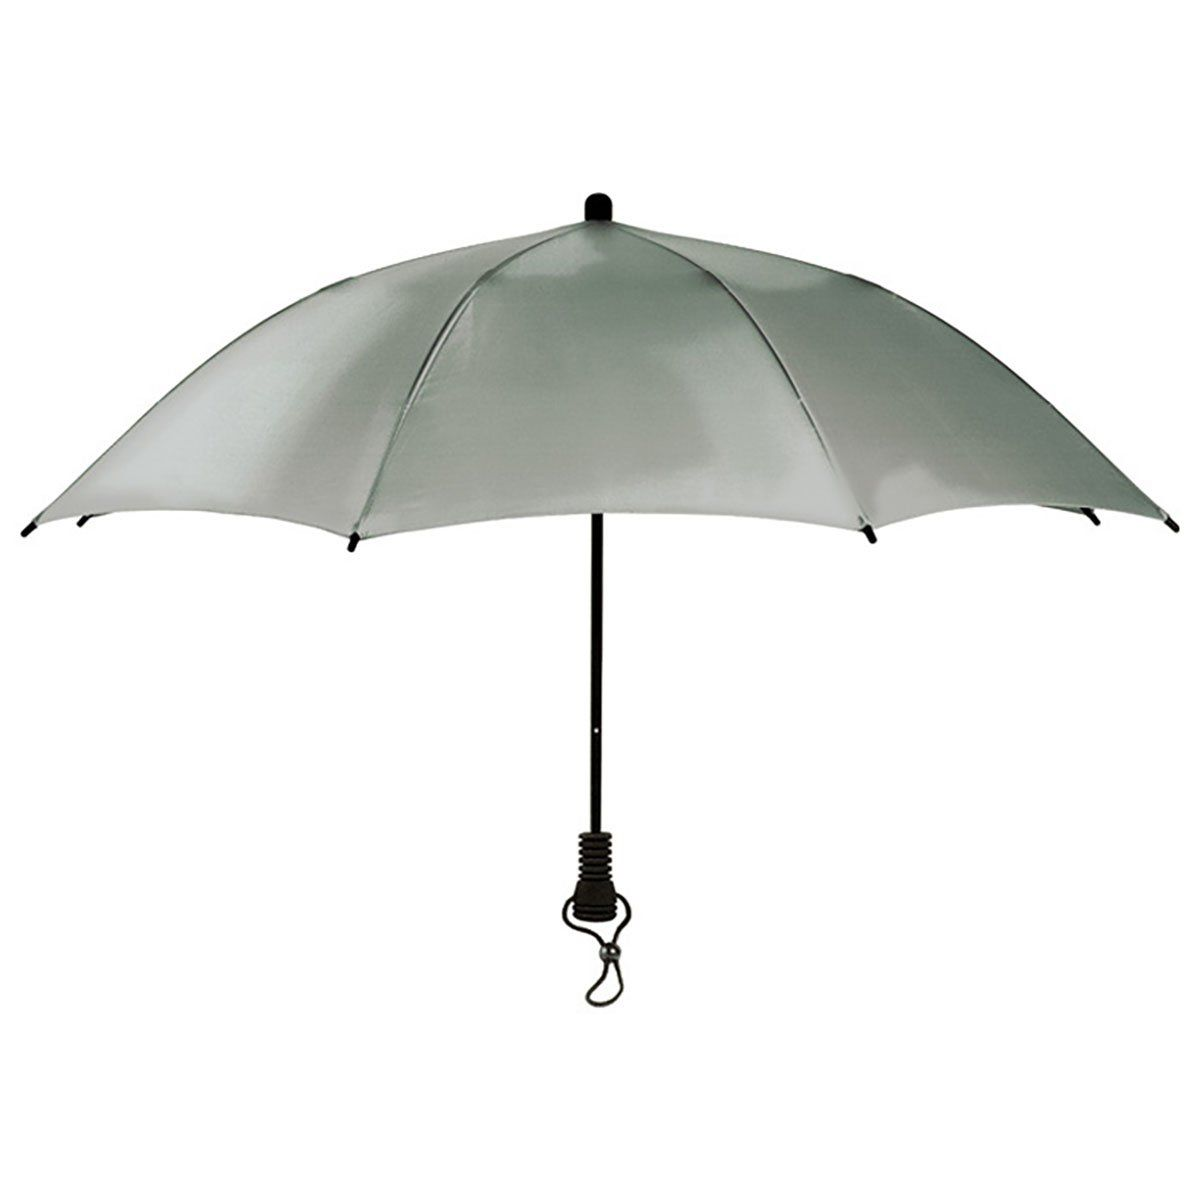 Euroschirm Light Trek Umbrella Glamorous Swing Trek Umbrellas Liteflex Trek Umbrella Silver  Backpacking Decorating Inspiration